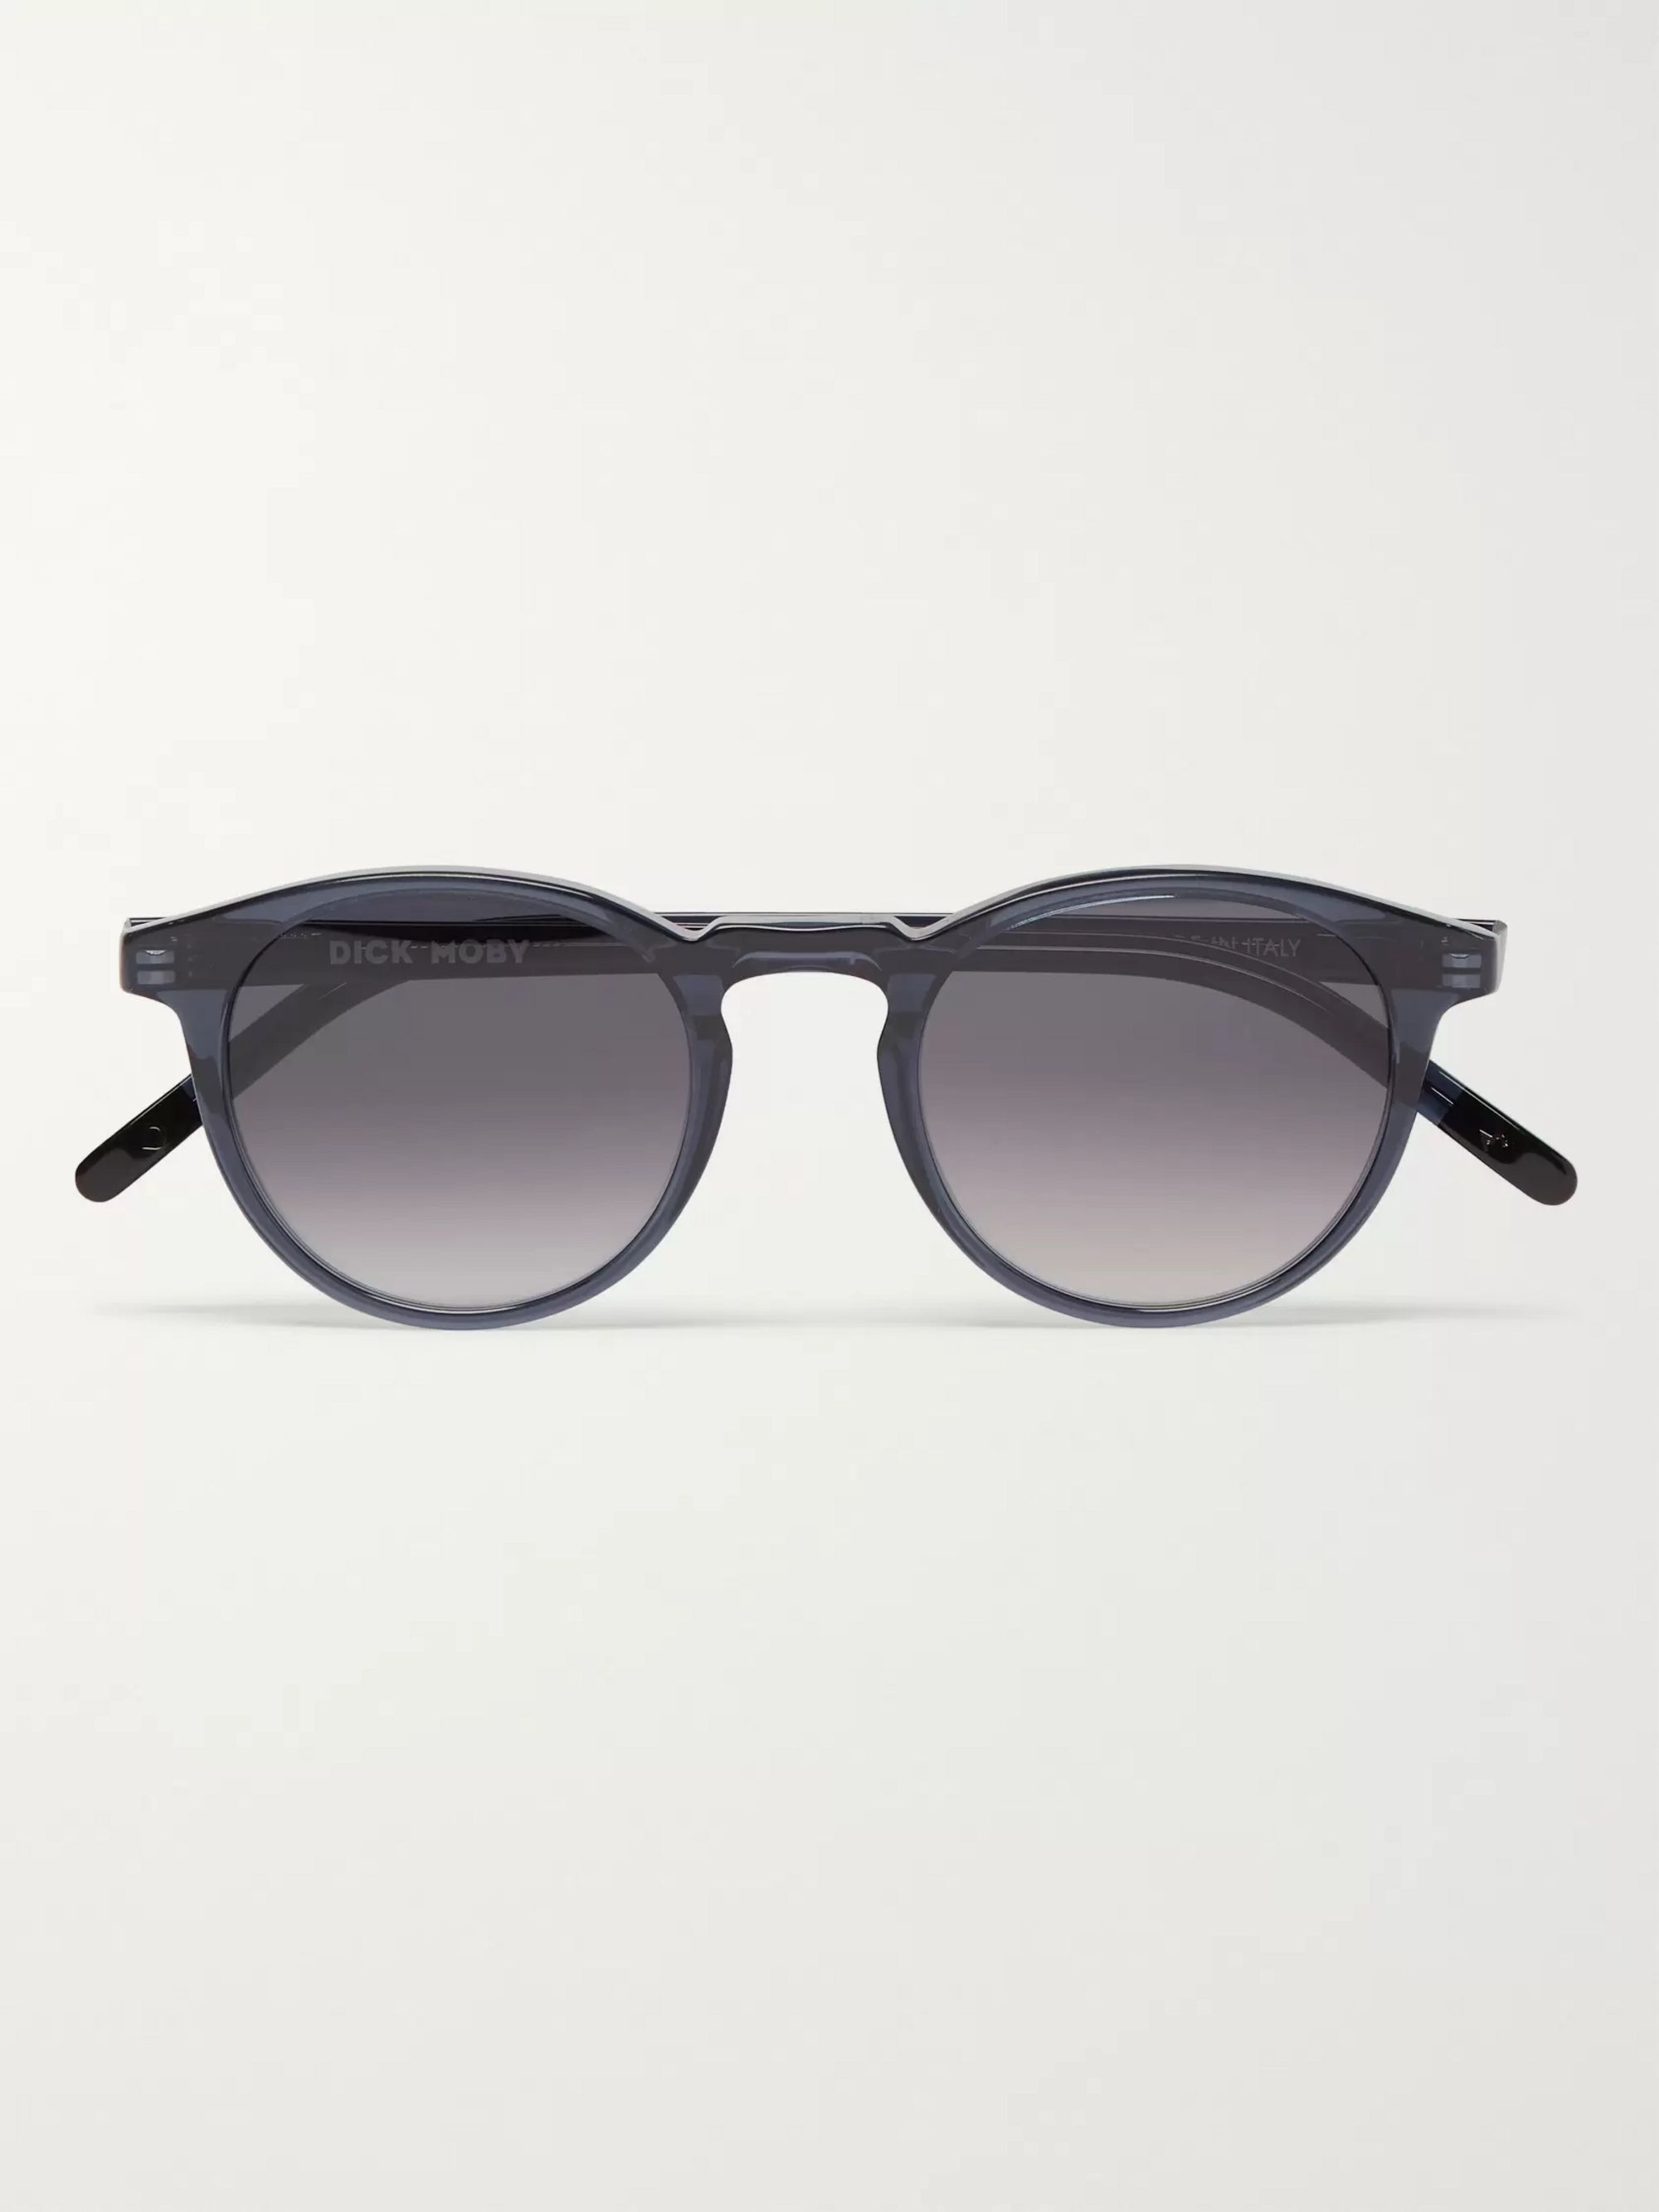 Dick Moby Seattle Round-Frame Acetate Sunglasses